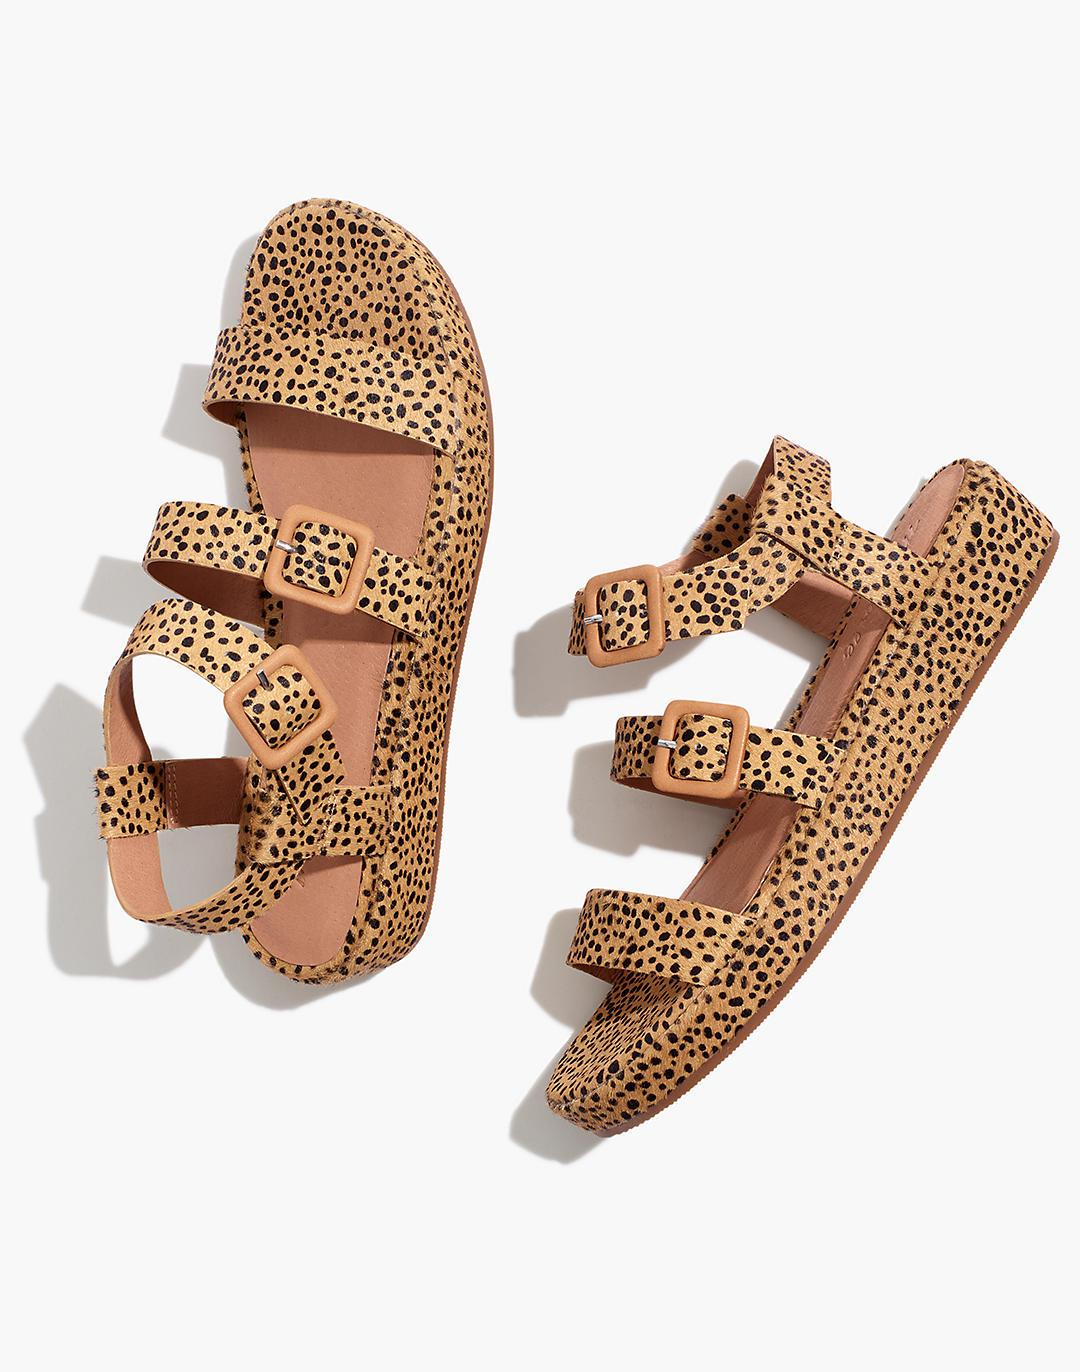 The Robin Platform Sandal in Spotted Calf Hair